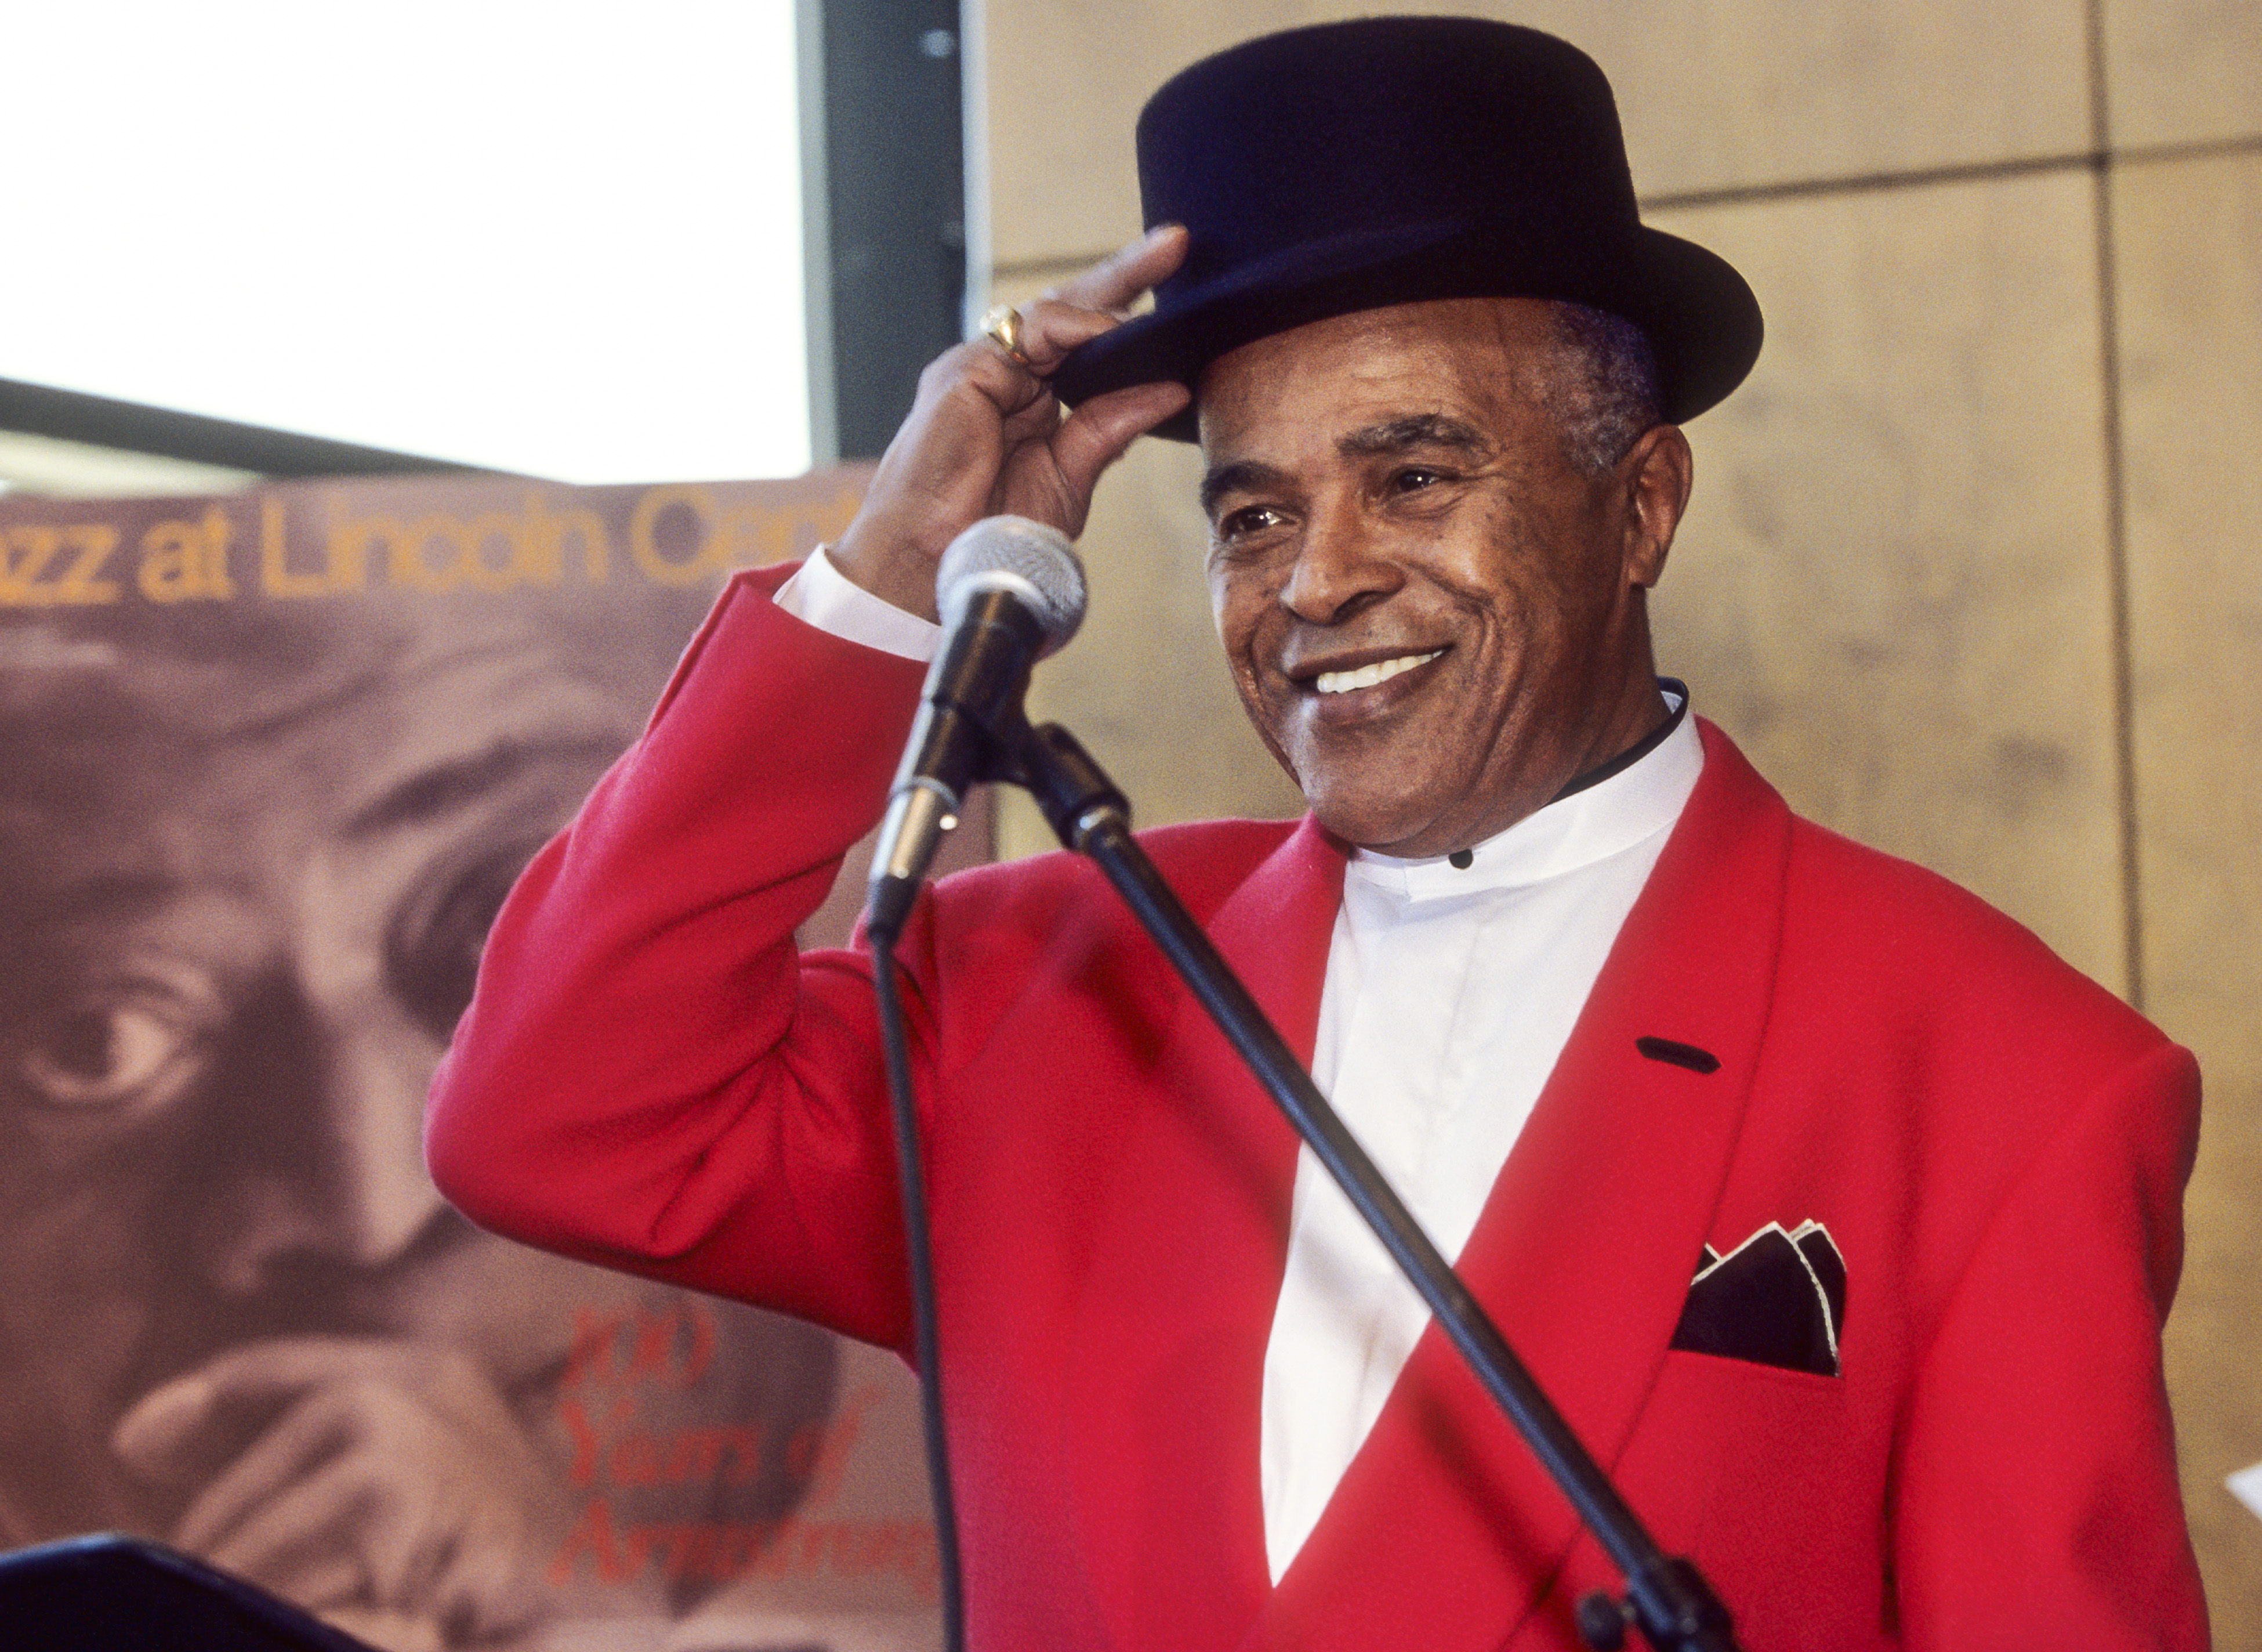 American Jazz musician Jon Hendricks tips his hat during a Jazz at Lincoln Center press conference on Feb. 1, 2000.